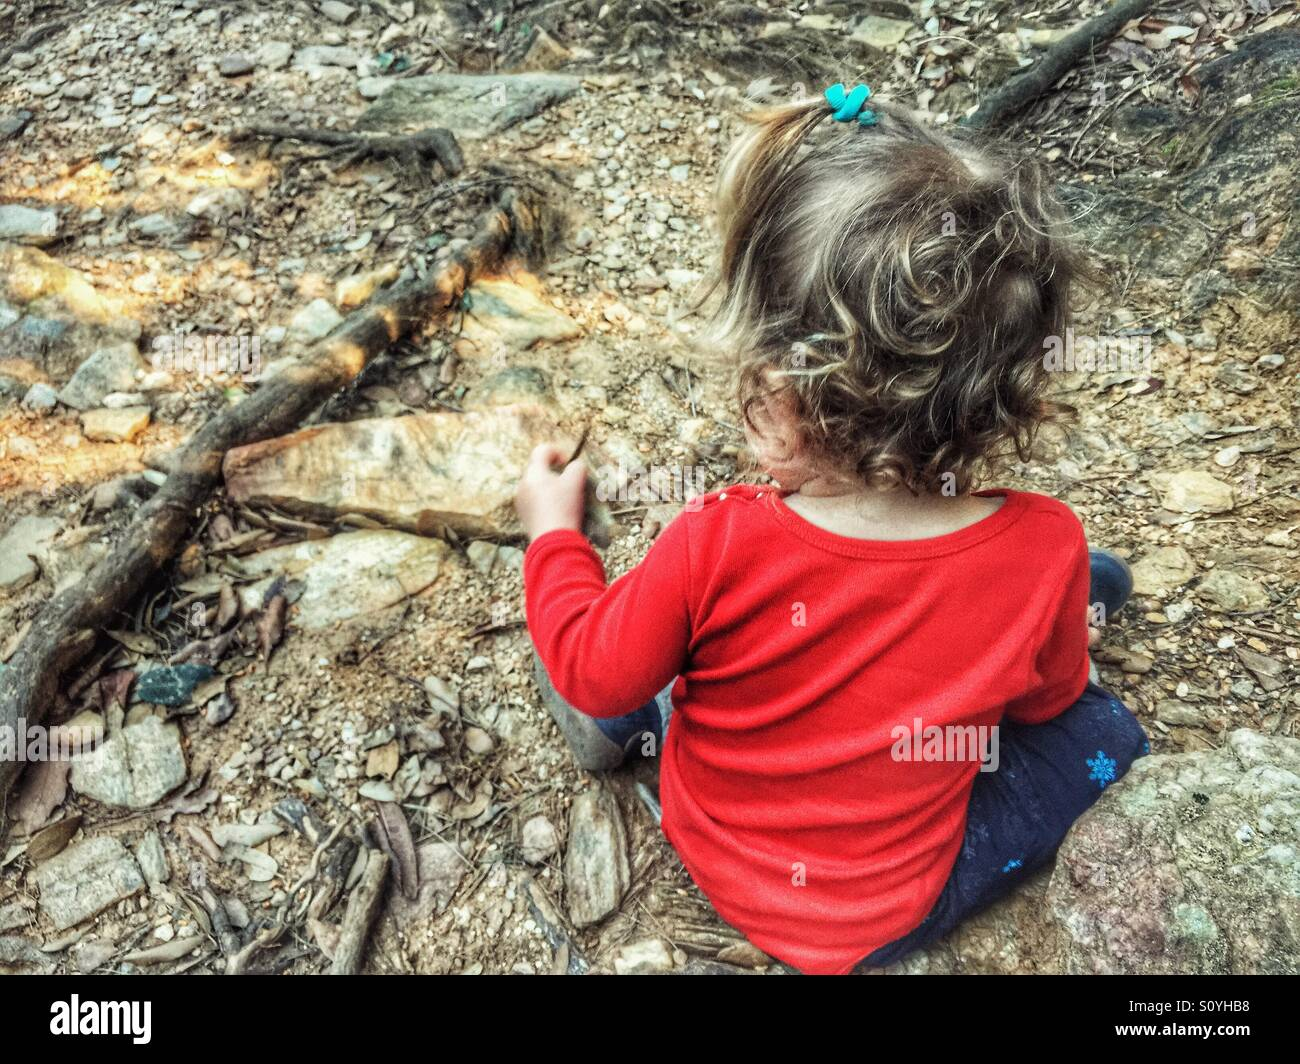 Toddler exploring the nature - Stock Image